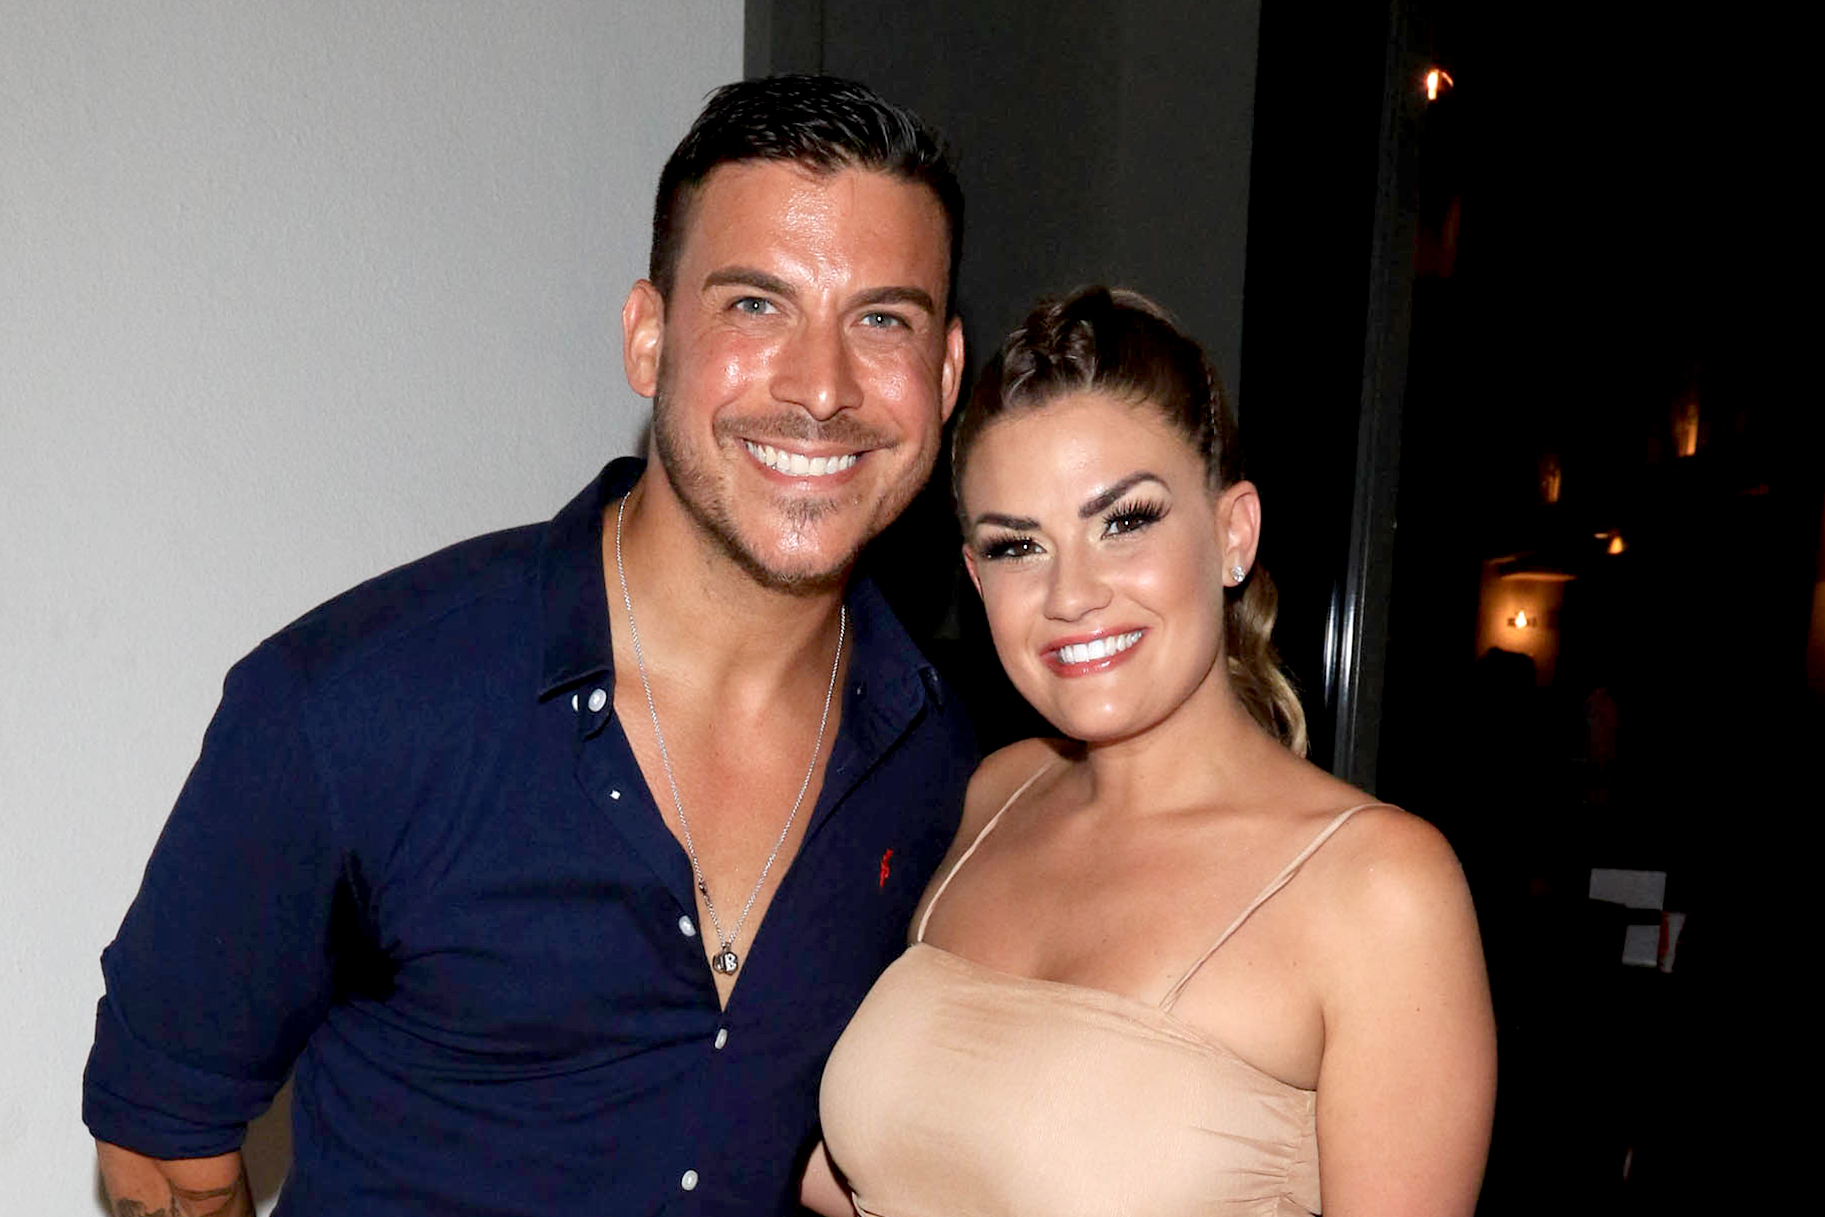 jax-taylor-and-brittany-cartwright-their-vanderpump-rules-co-stars-were-reportedly-blindsided-by-their-exit